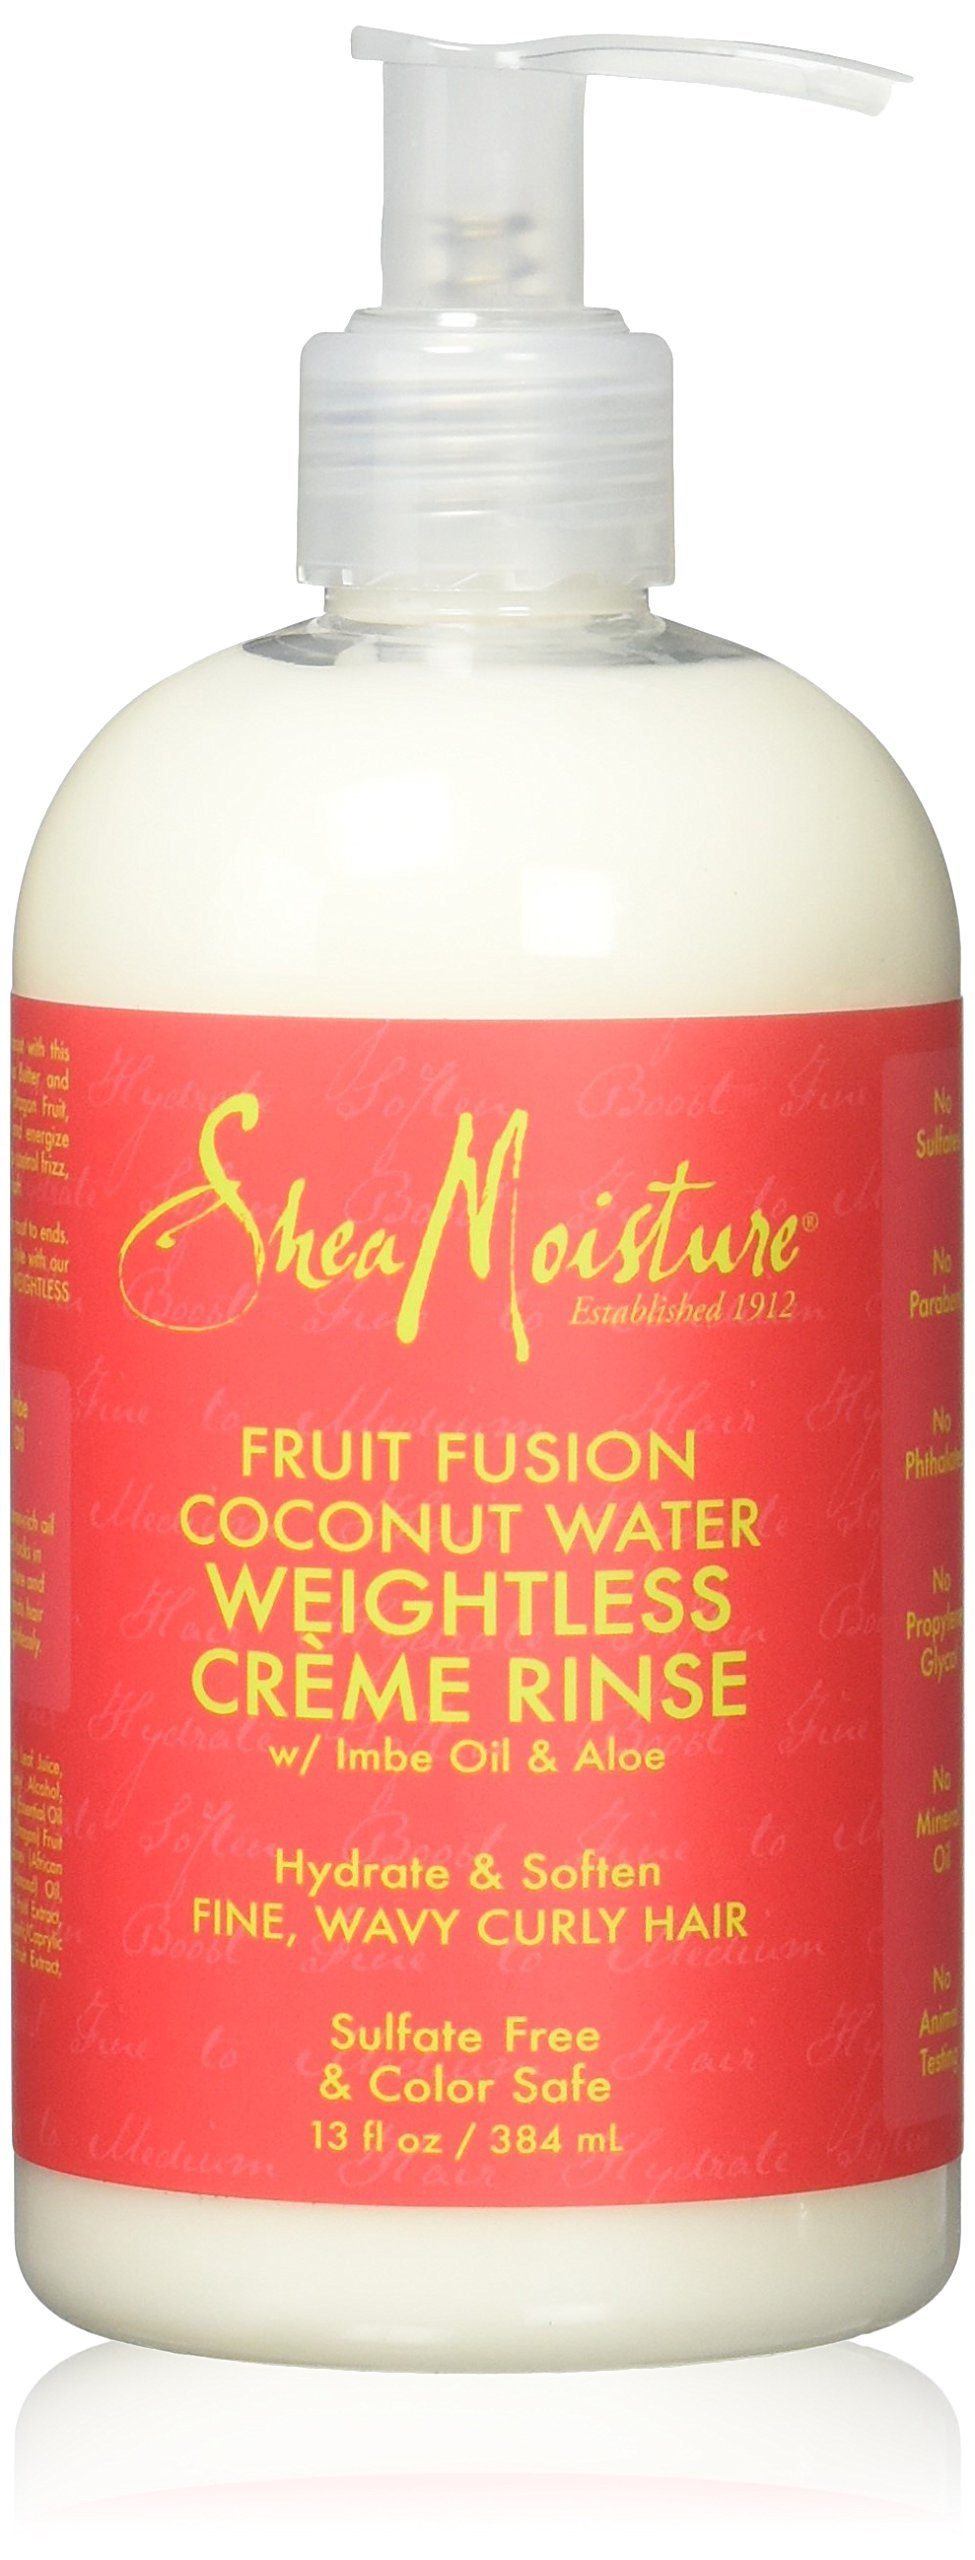 Shea Moisture Fruit Fusion Coconut Water Weightless Creme Rinse 1, 13 Ounce